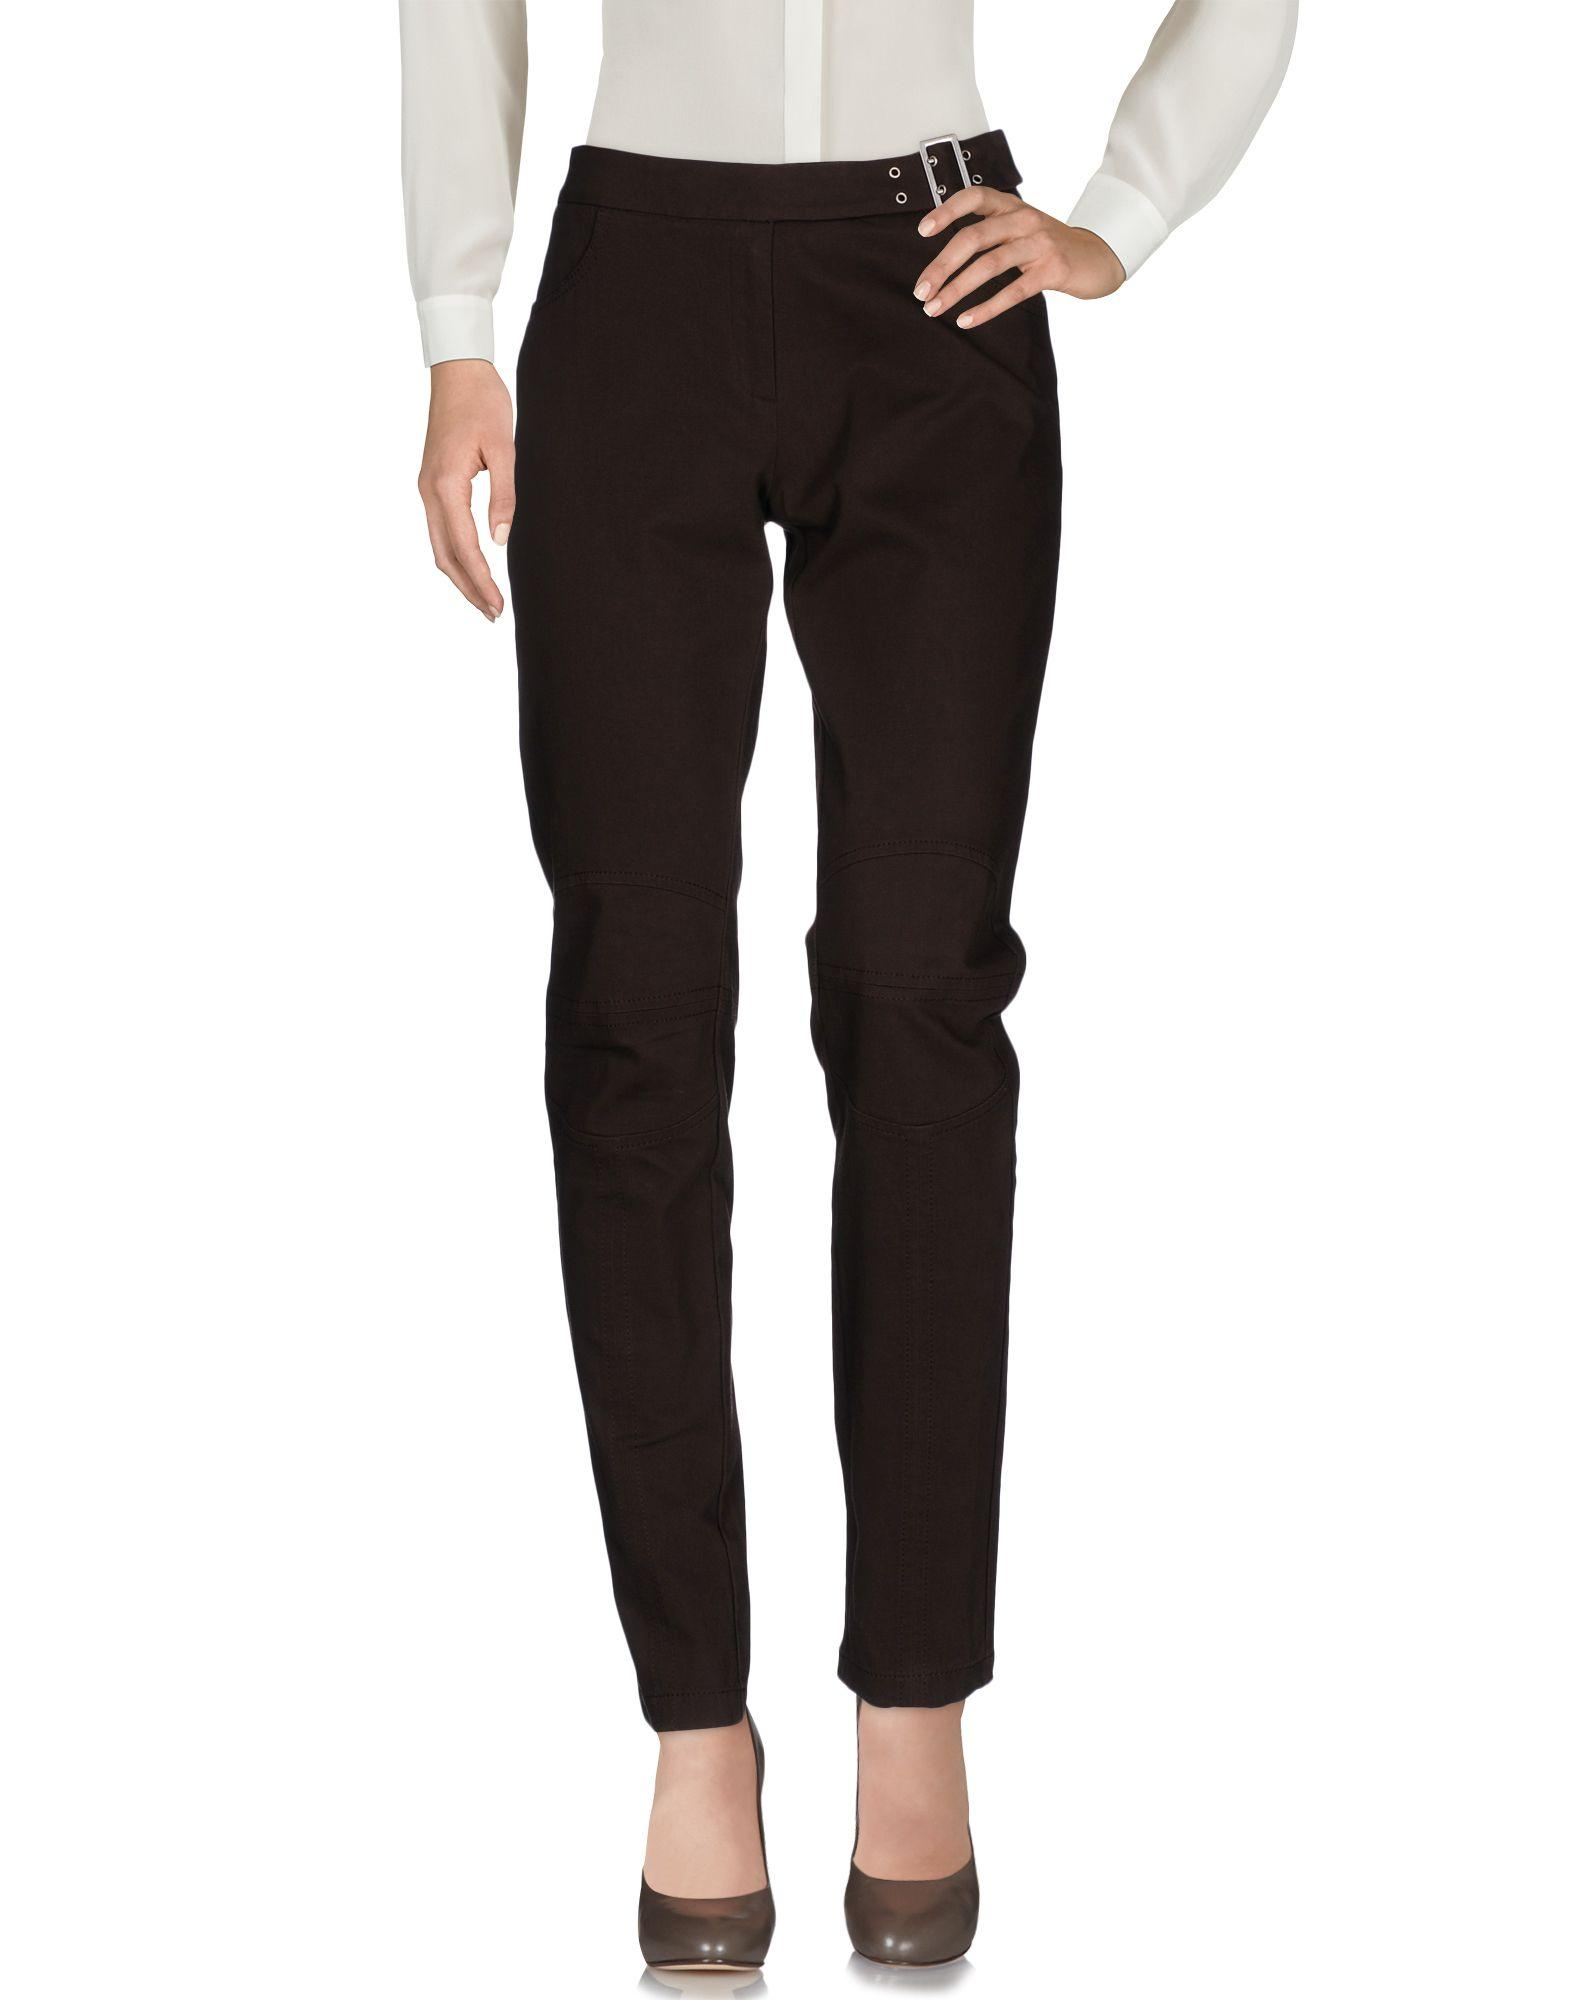 I'M Isola Marras Casual Pants In Dark Brown